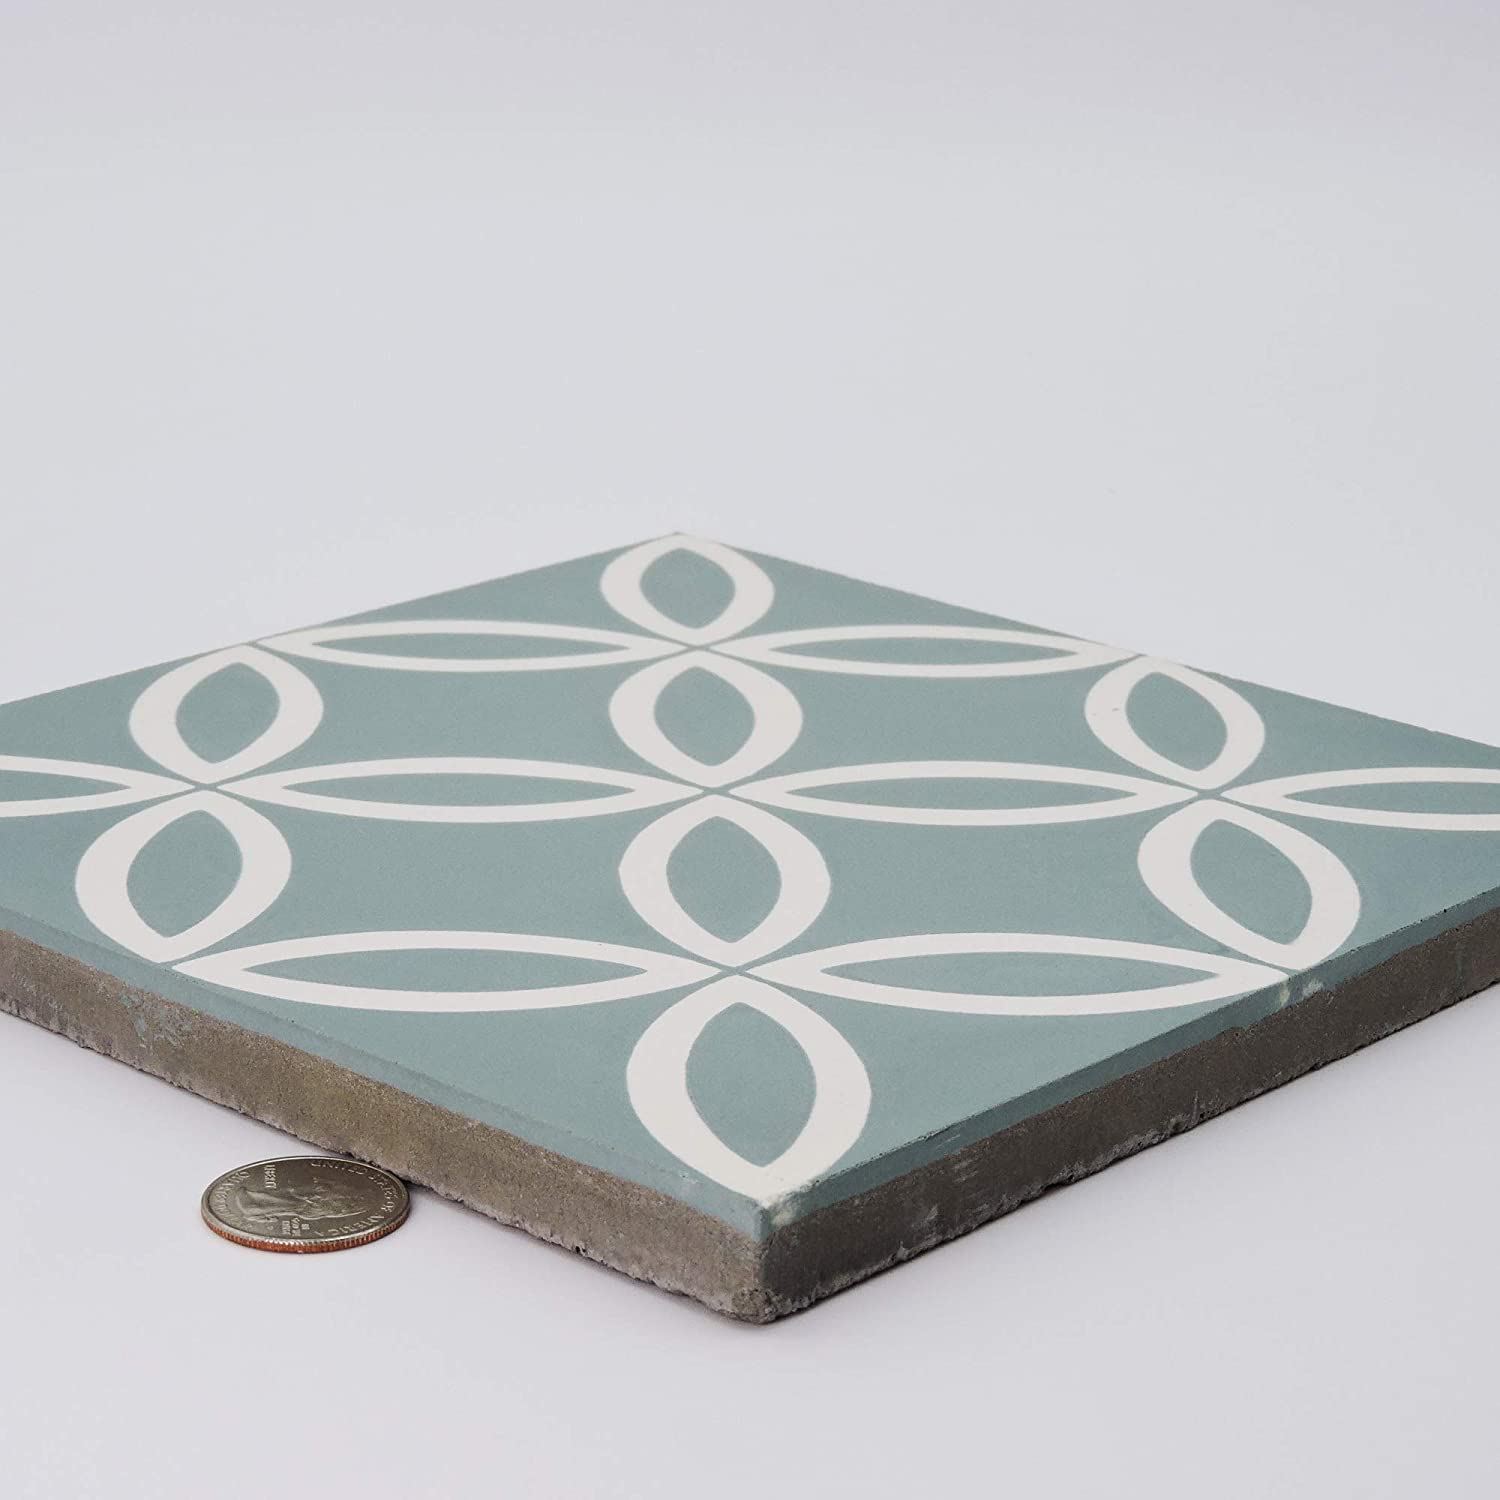 Moroccan Mosaic /& Tile House CTP07-14 Amlo Handmade Cement Tile 8x 8 Green,White